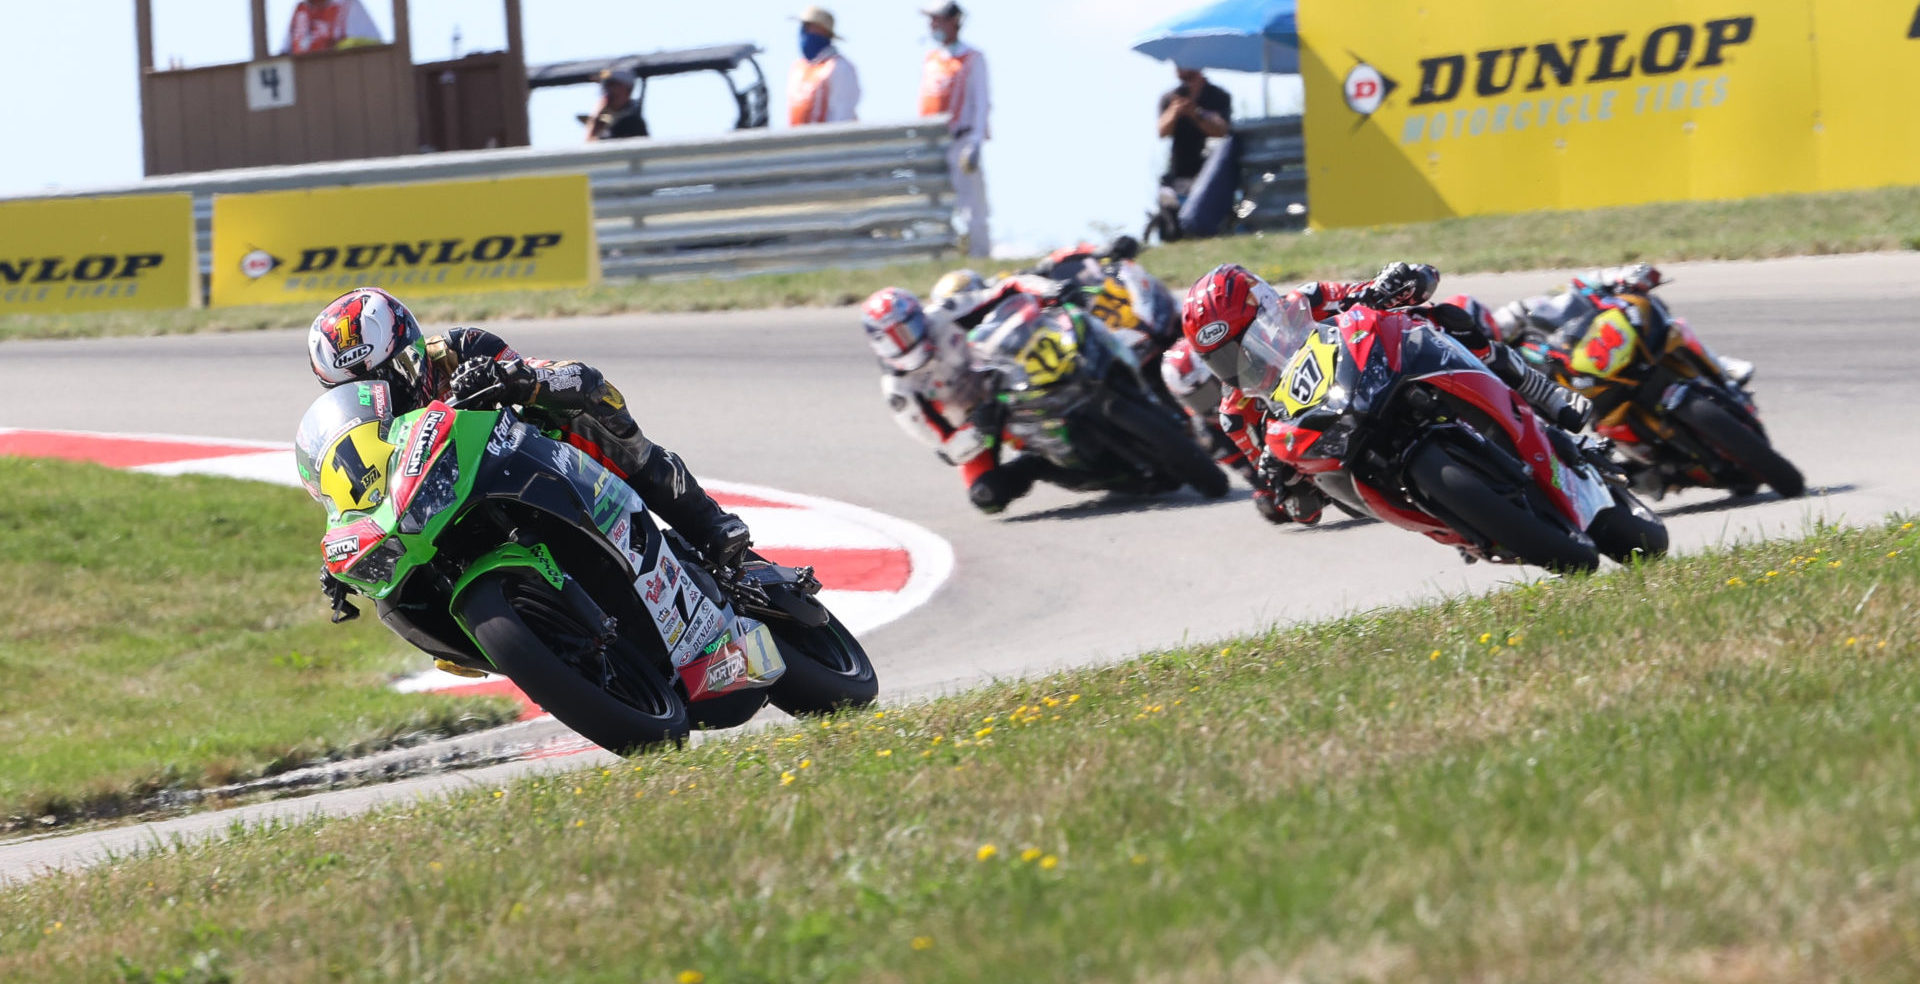 Rocco Landers (1) leads restarted Junior Cup Race One. Photo by Brian J. Nelson, courtesy MotoAmerica.